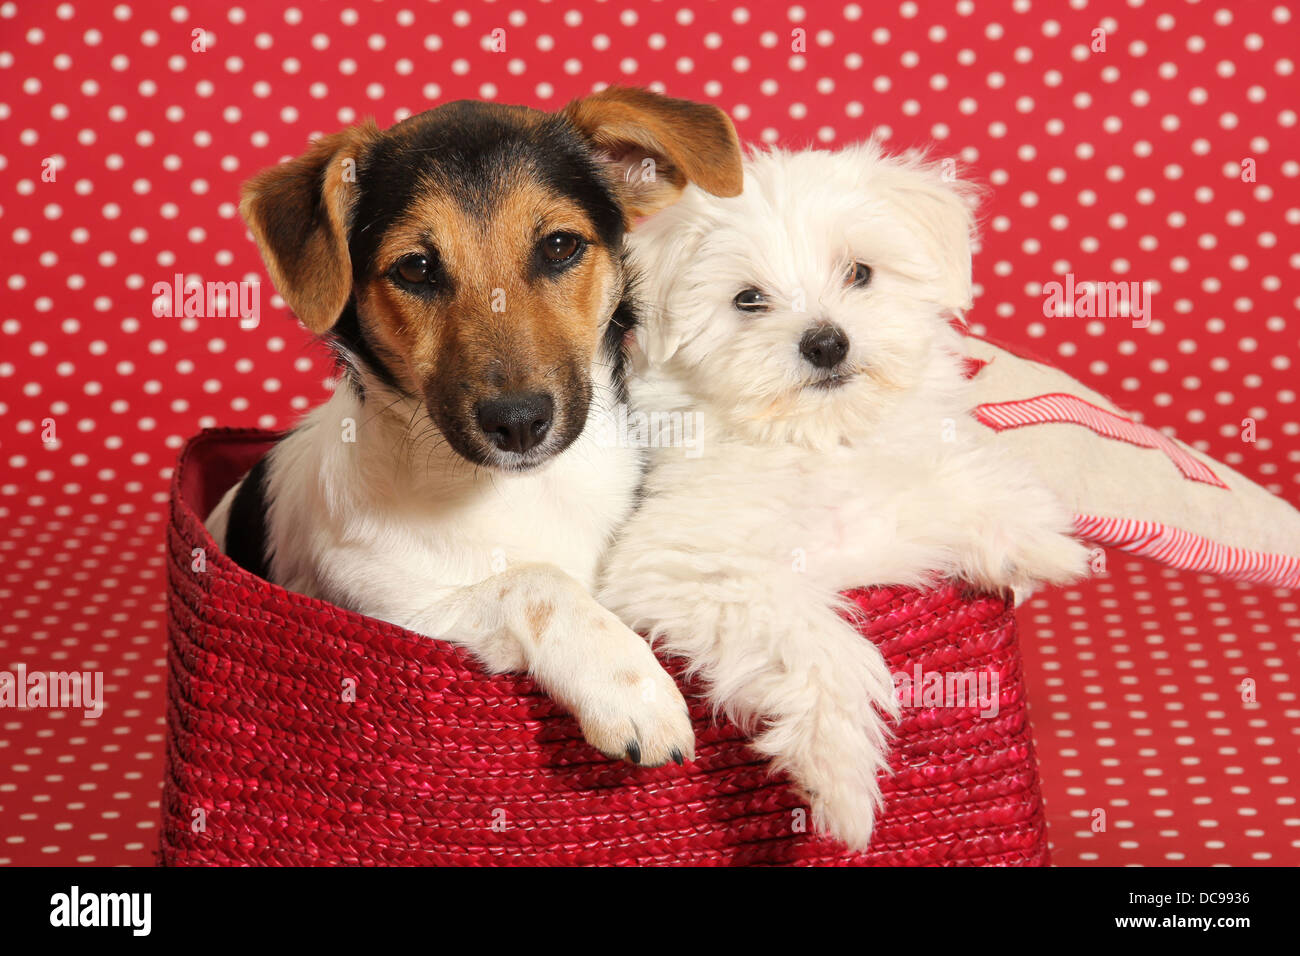 Jack Russell Terrier and Maltese puppy lying in a basket in front of a red background with white polka dots - Stock Image